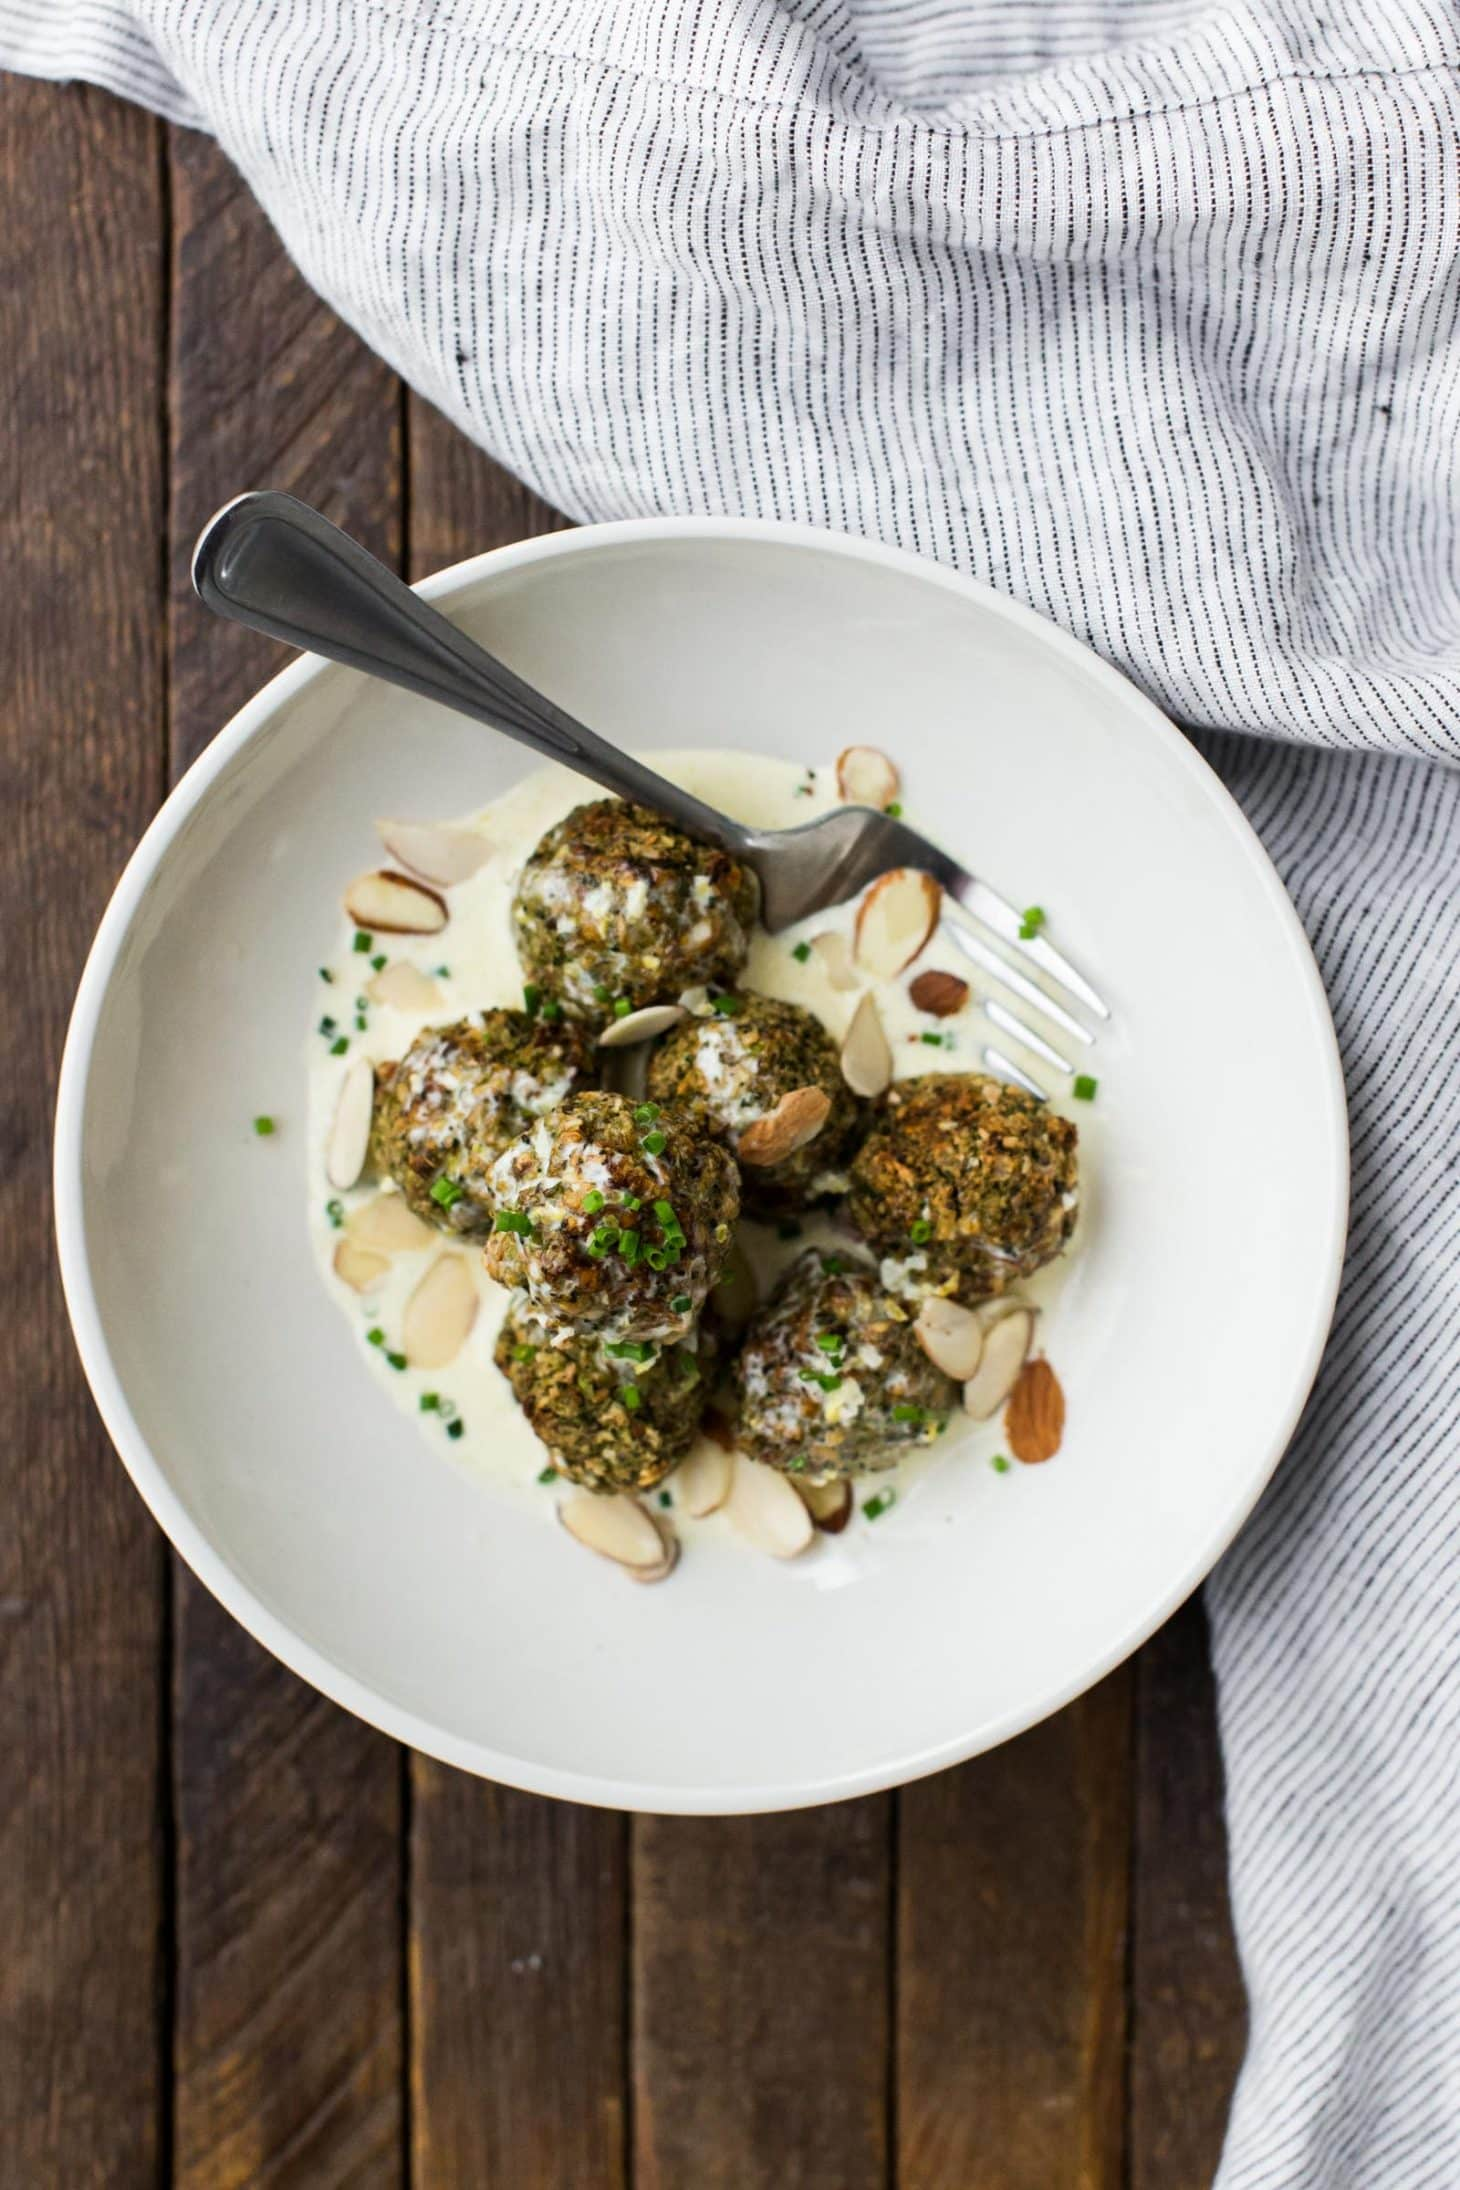 Lentil Broccoli Bites with Cream Sauce